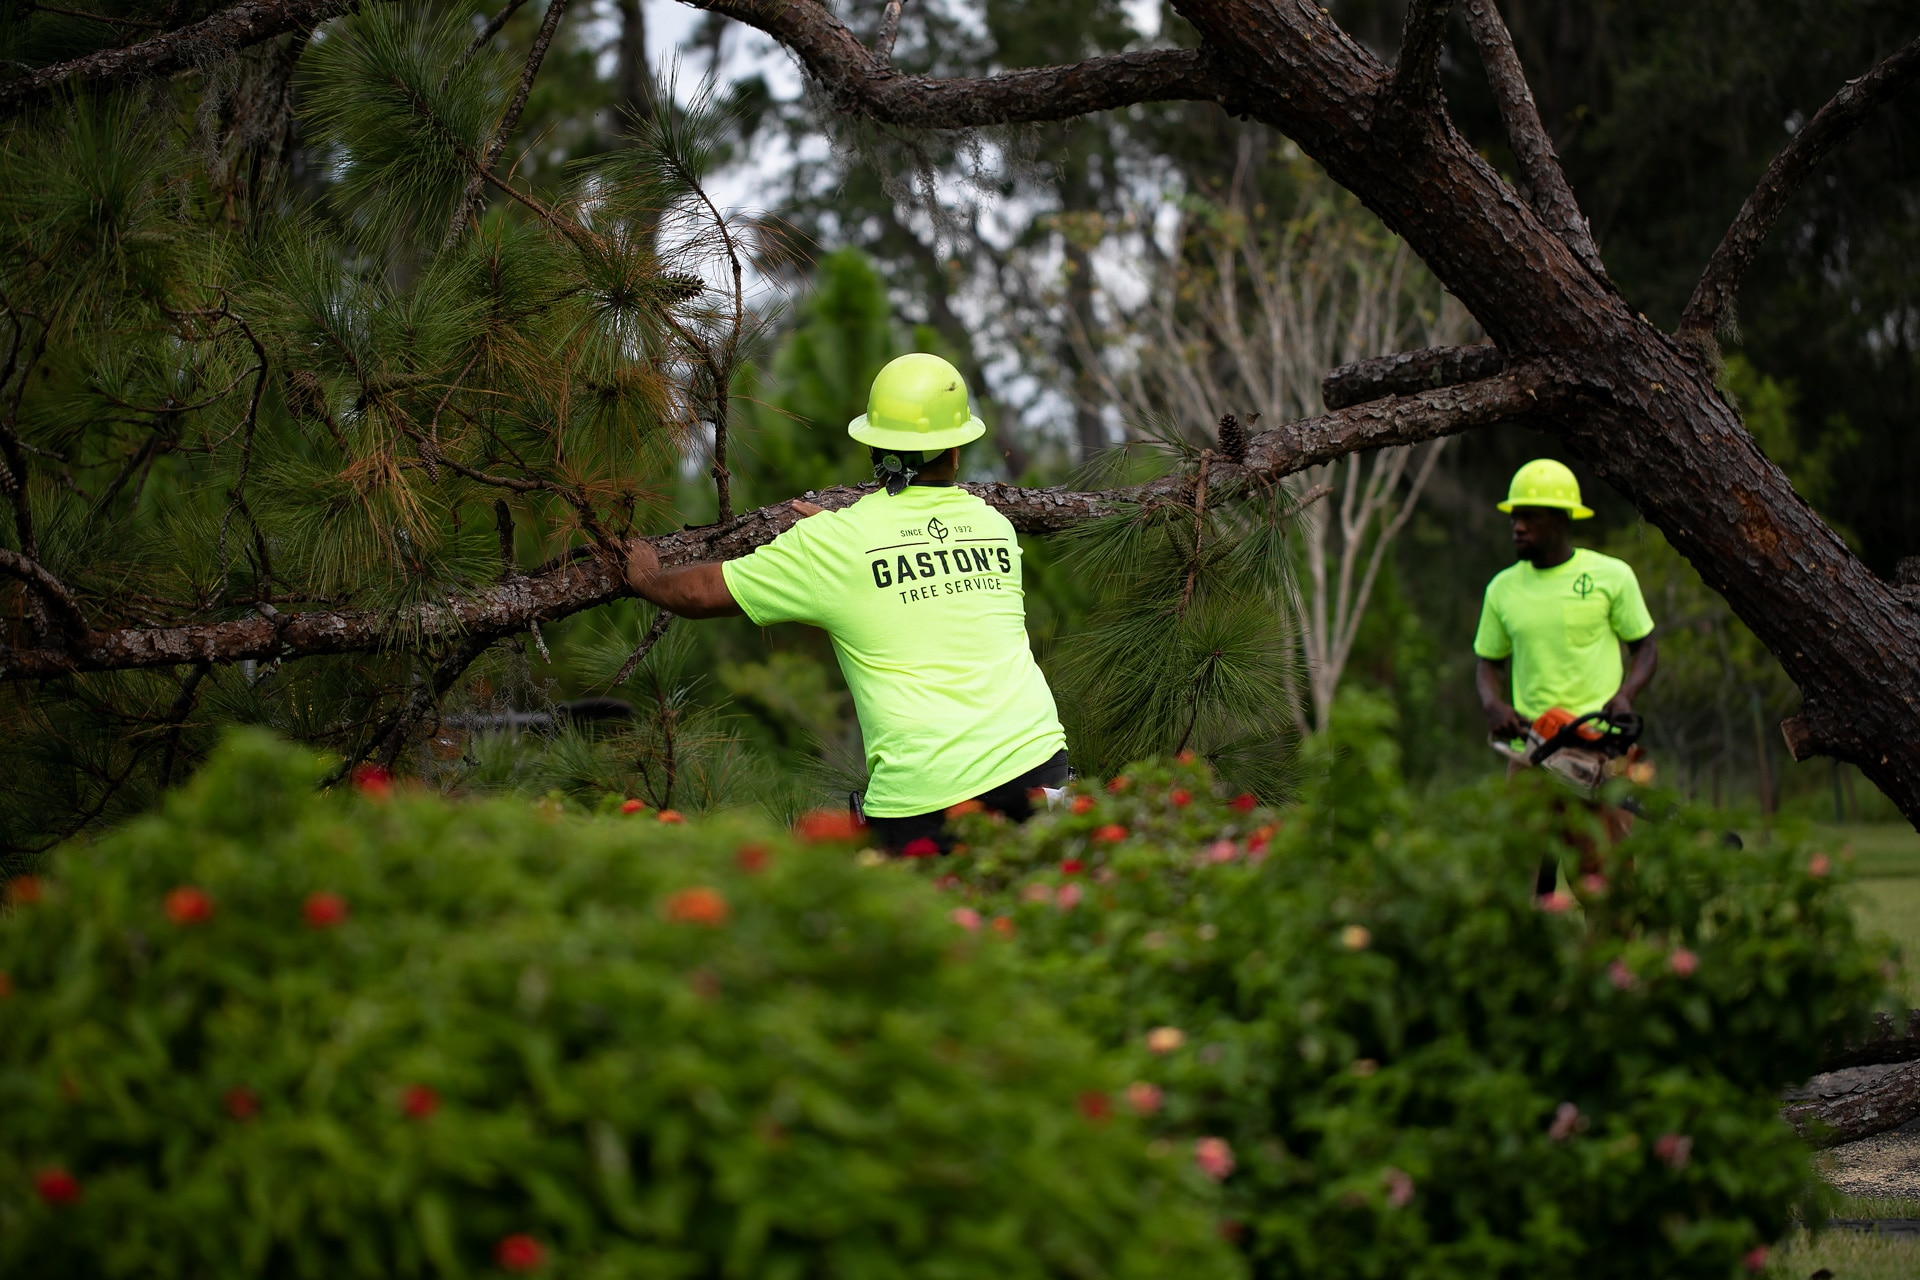 Workers moving tree limbs for Gaston's Tree Service